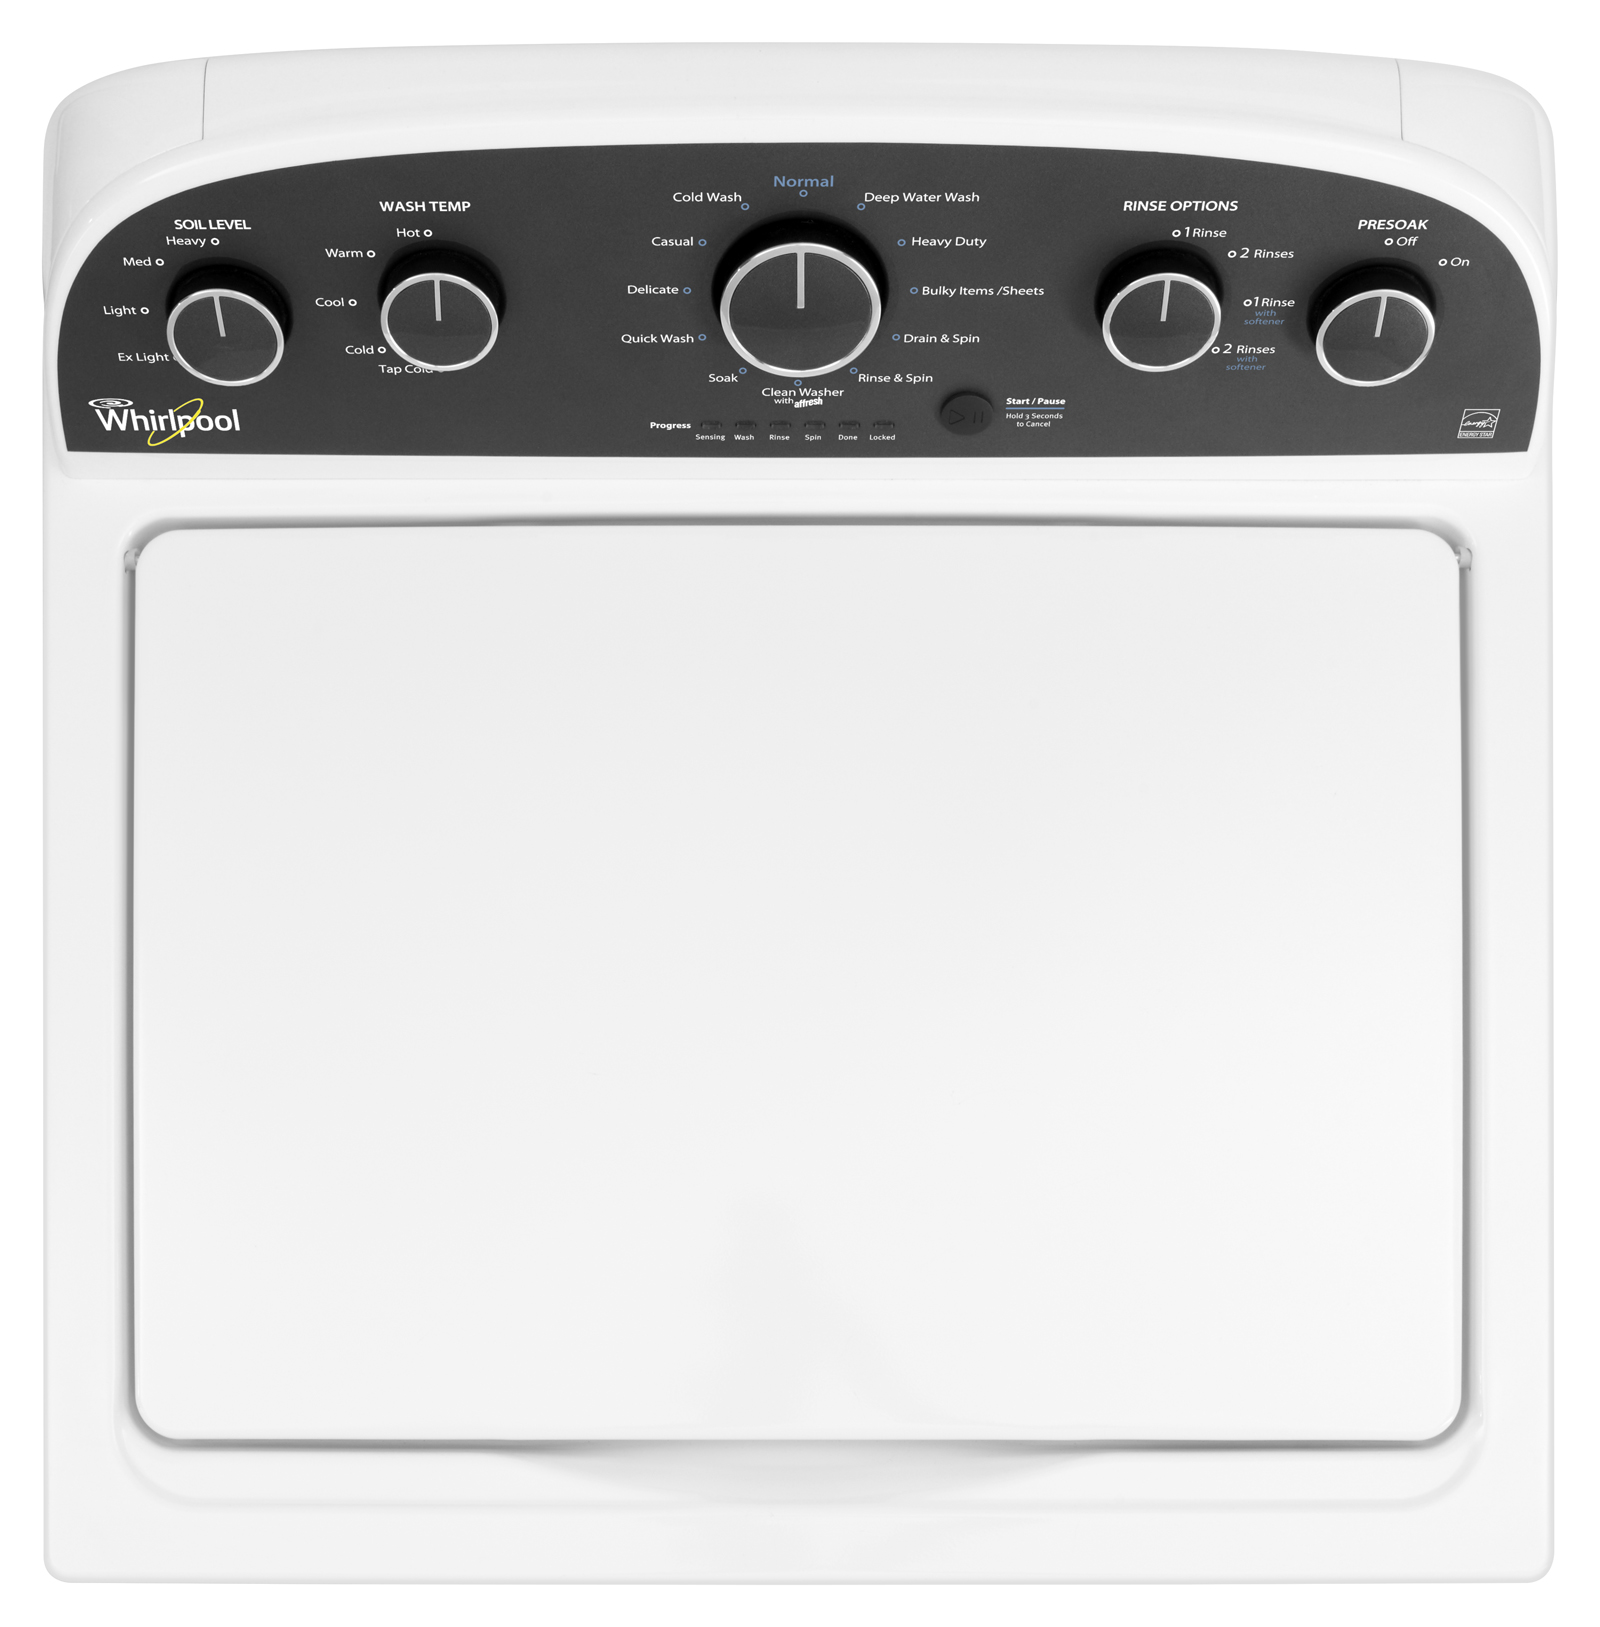 Whirlpool 3.8 cu. ft. HE Top-Load Washer w/ 5 Adaptive Wash Actions - White